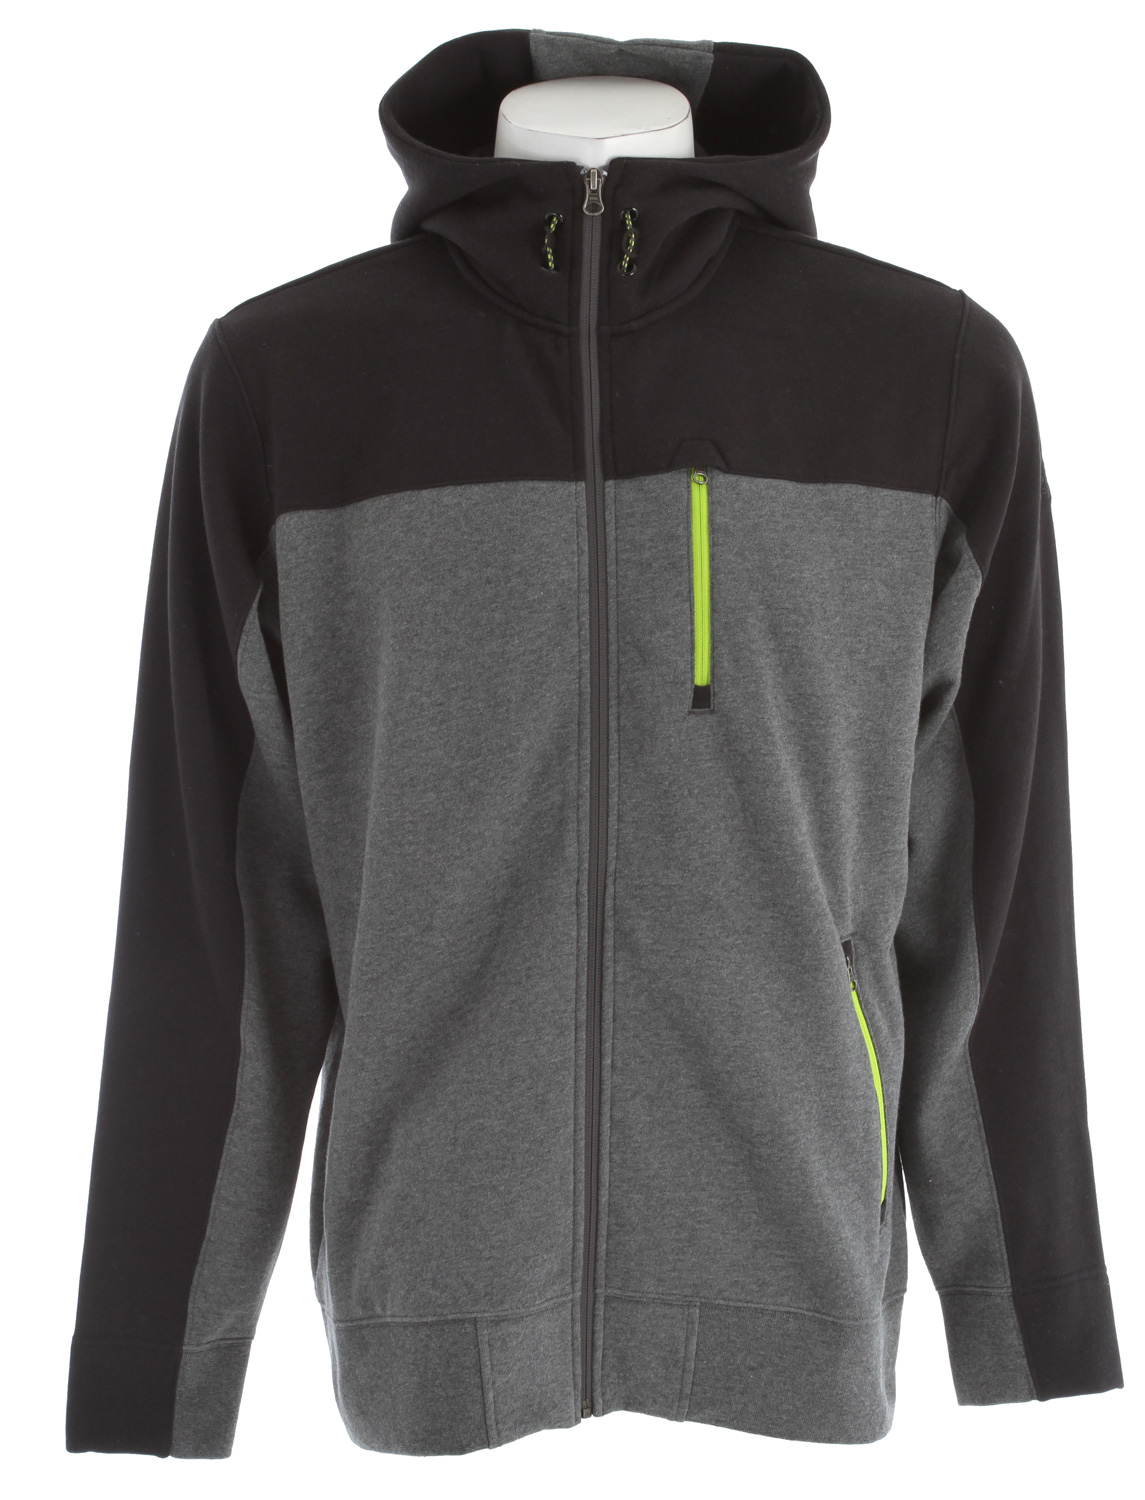 Key Features of The North Face Salz Full Zip Hoodie: Soft, comfortable, easy-care fabric Contrast color blocking at shoulders, sleeves, hood and zipper garages Reverse-coil zips in contrast color at hand pockets and Napoleon pocket Adjustable drawcord system at hood Embroidered logo at left sleeve and right shoulder / fabric: 80% cotton, 20% polyester fleece - $59.95